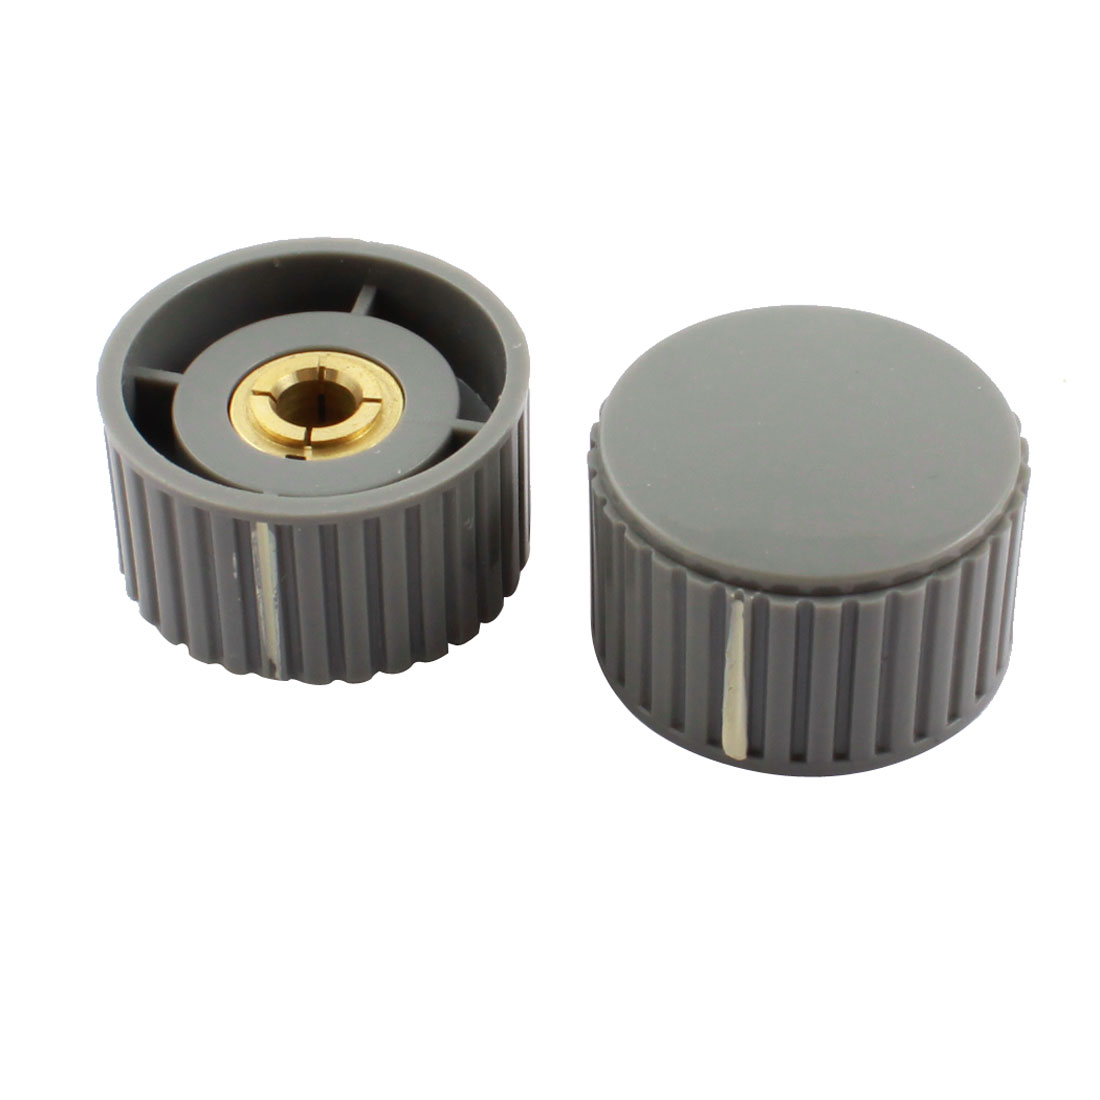 2 Pcs 6mm Dia Hole Gray Plastic Rotary Nonslip Volume Control Potentiometer Encoder Knob Cap 32mm